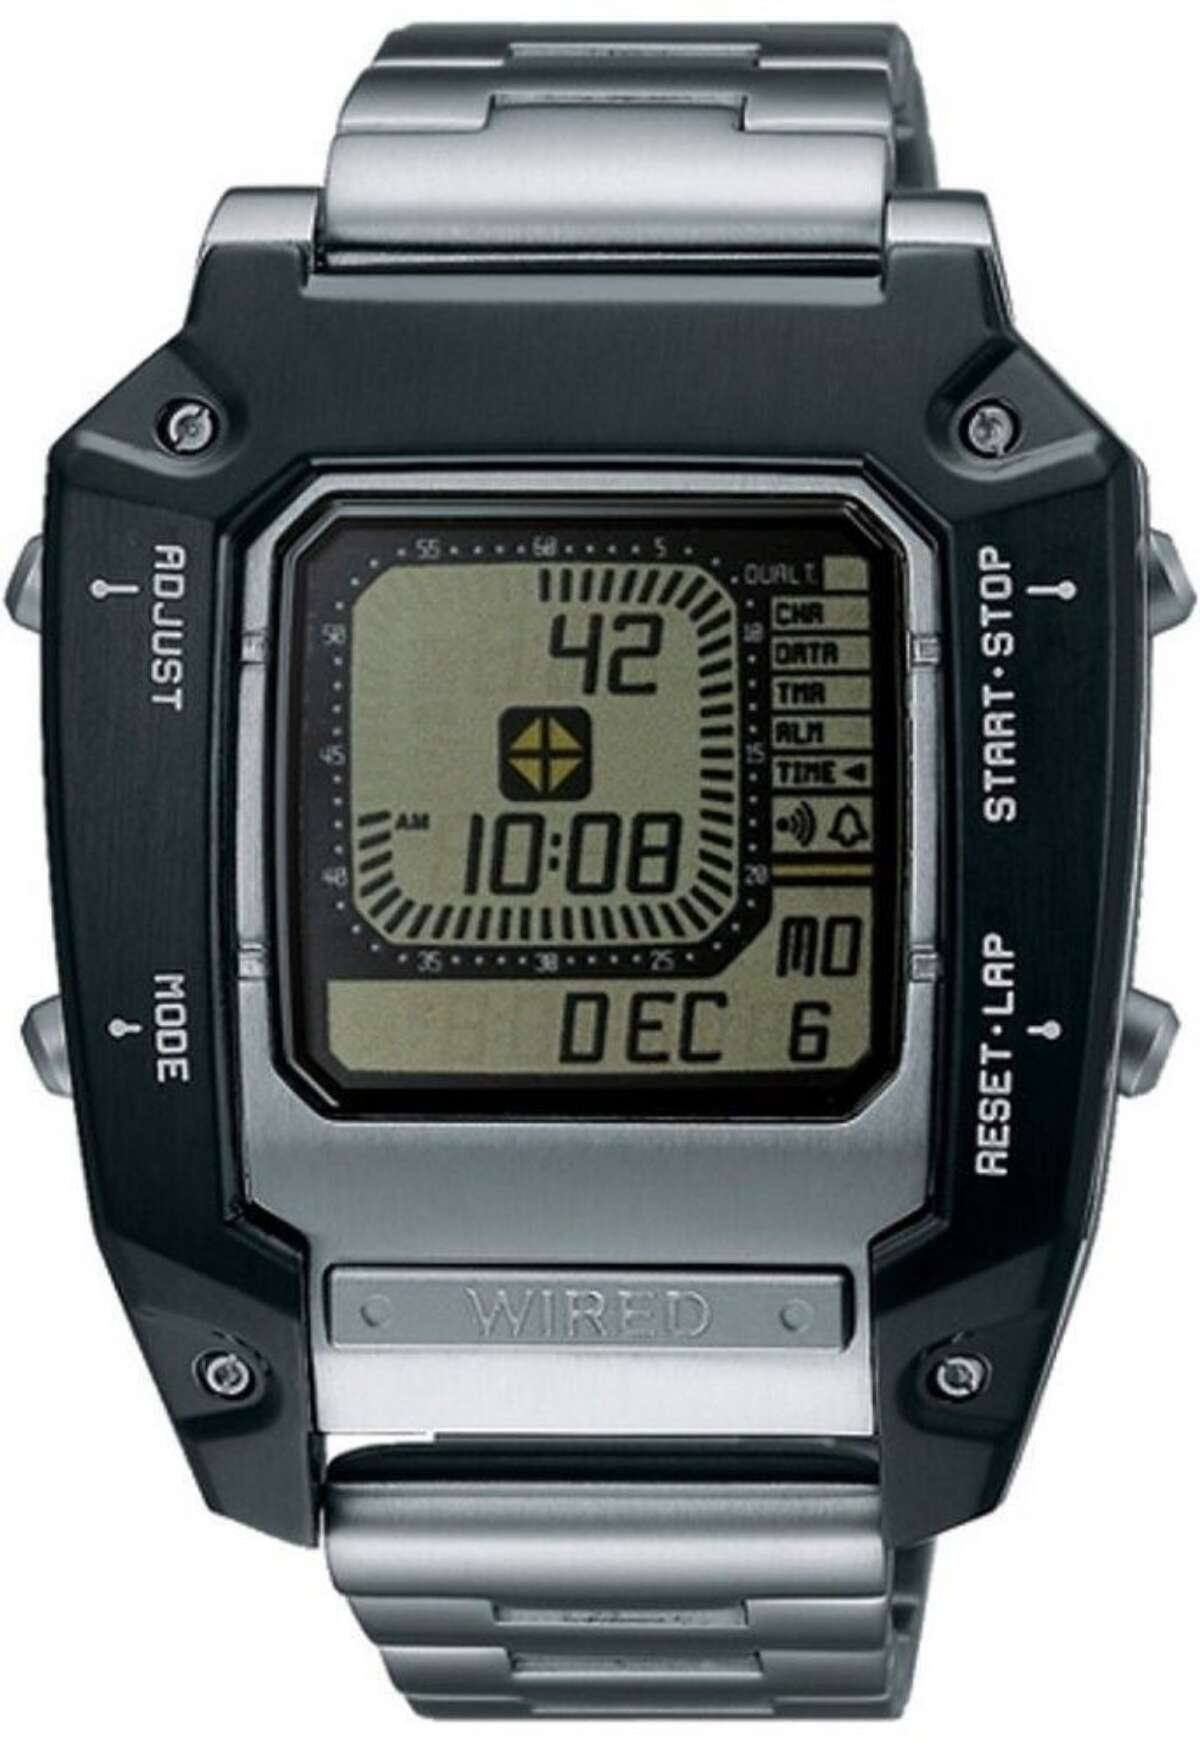 Digital Dust: What happened to the digital watch? | Epochs